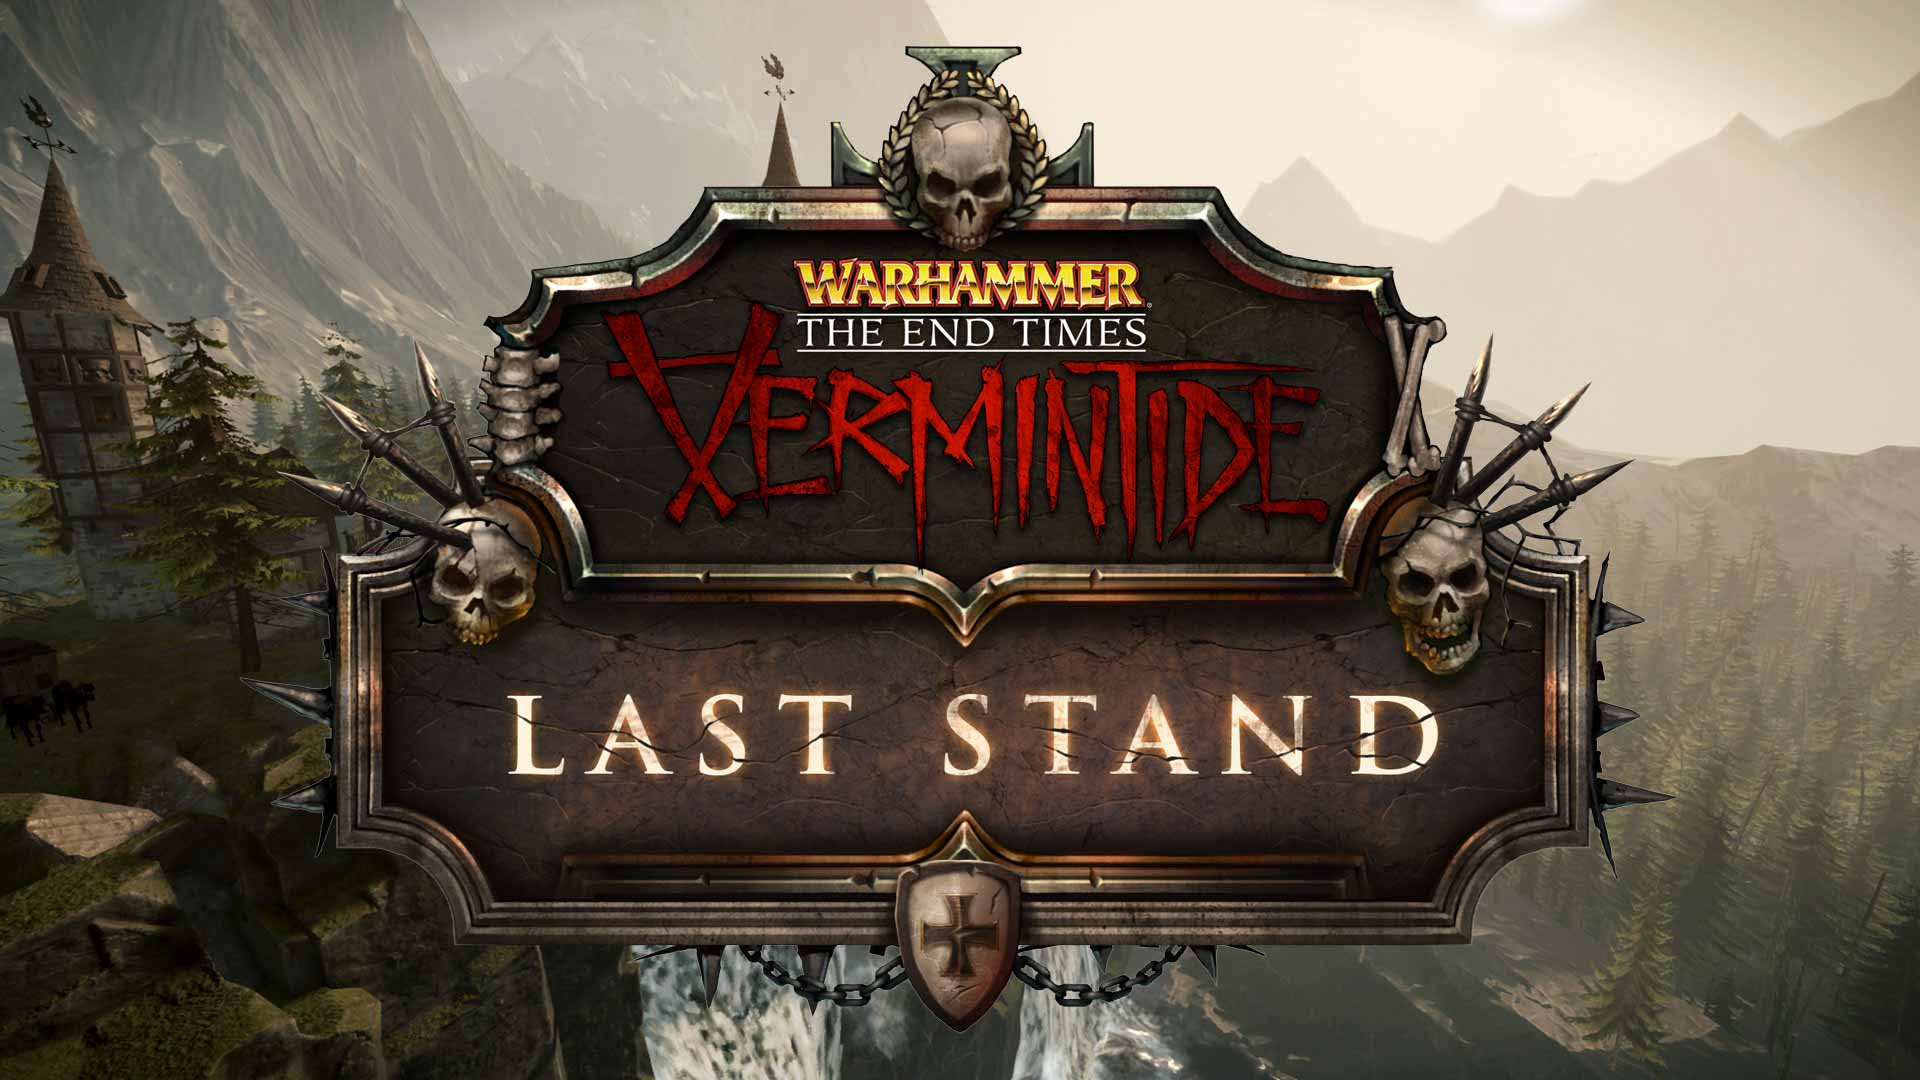 Vermintide - The Last Stand